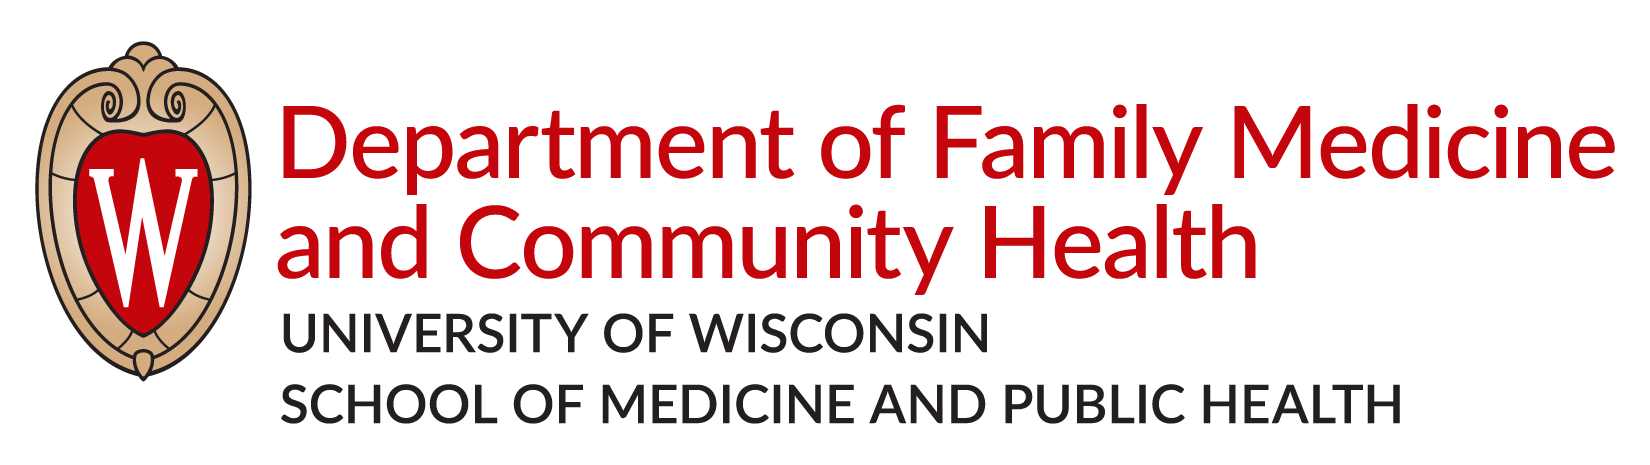 Department of Family Medicine and Community Health